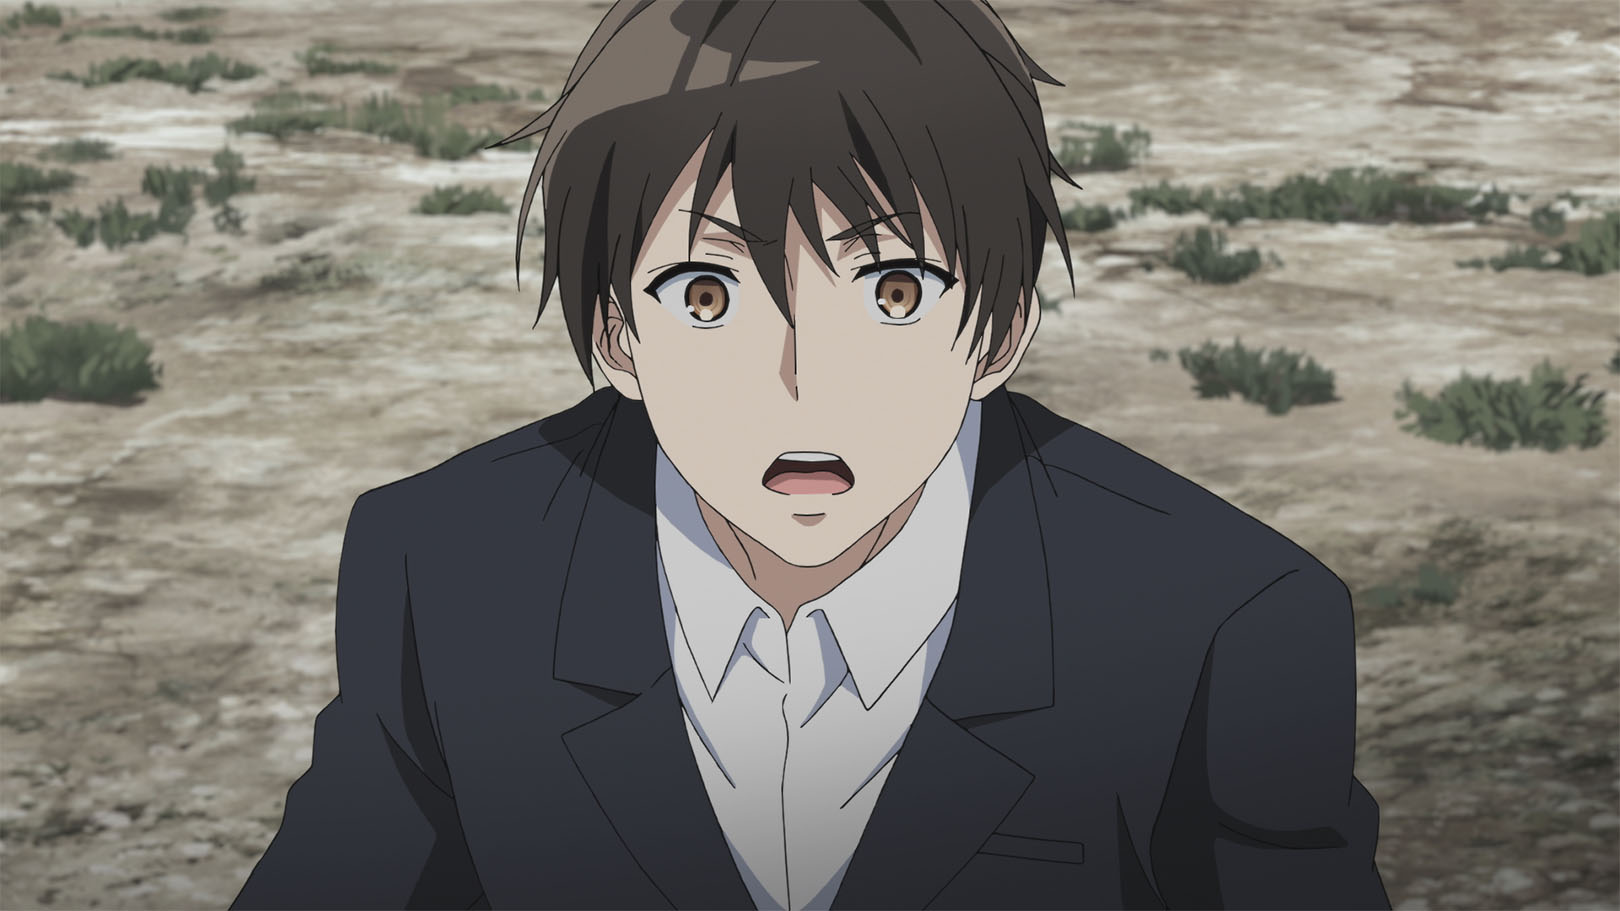 https://tanmoshi-anime.jp/core_sys/images/contents/00000017/block/00000054/00000120.jpg?1631676679